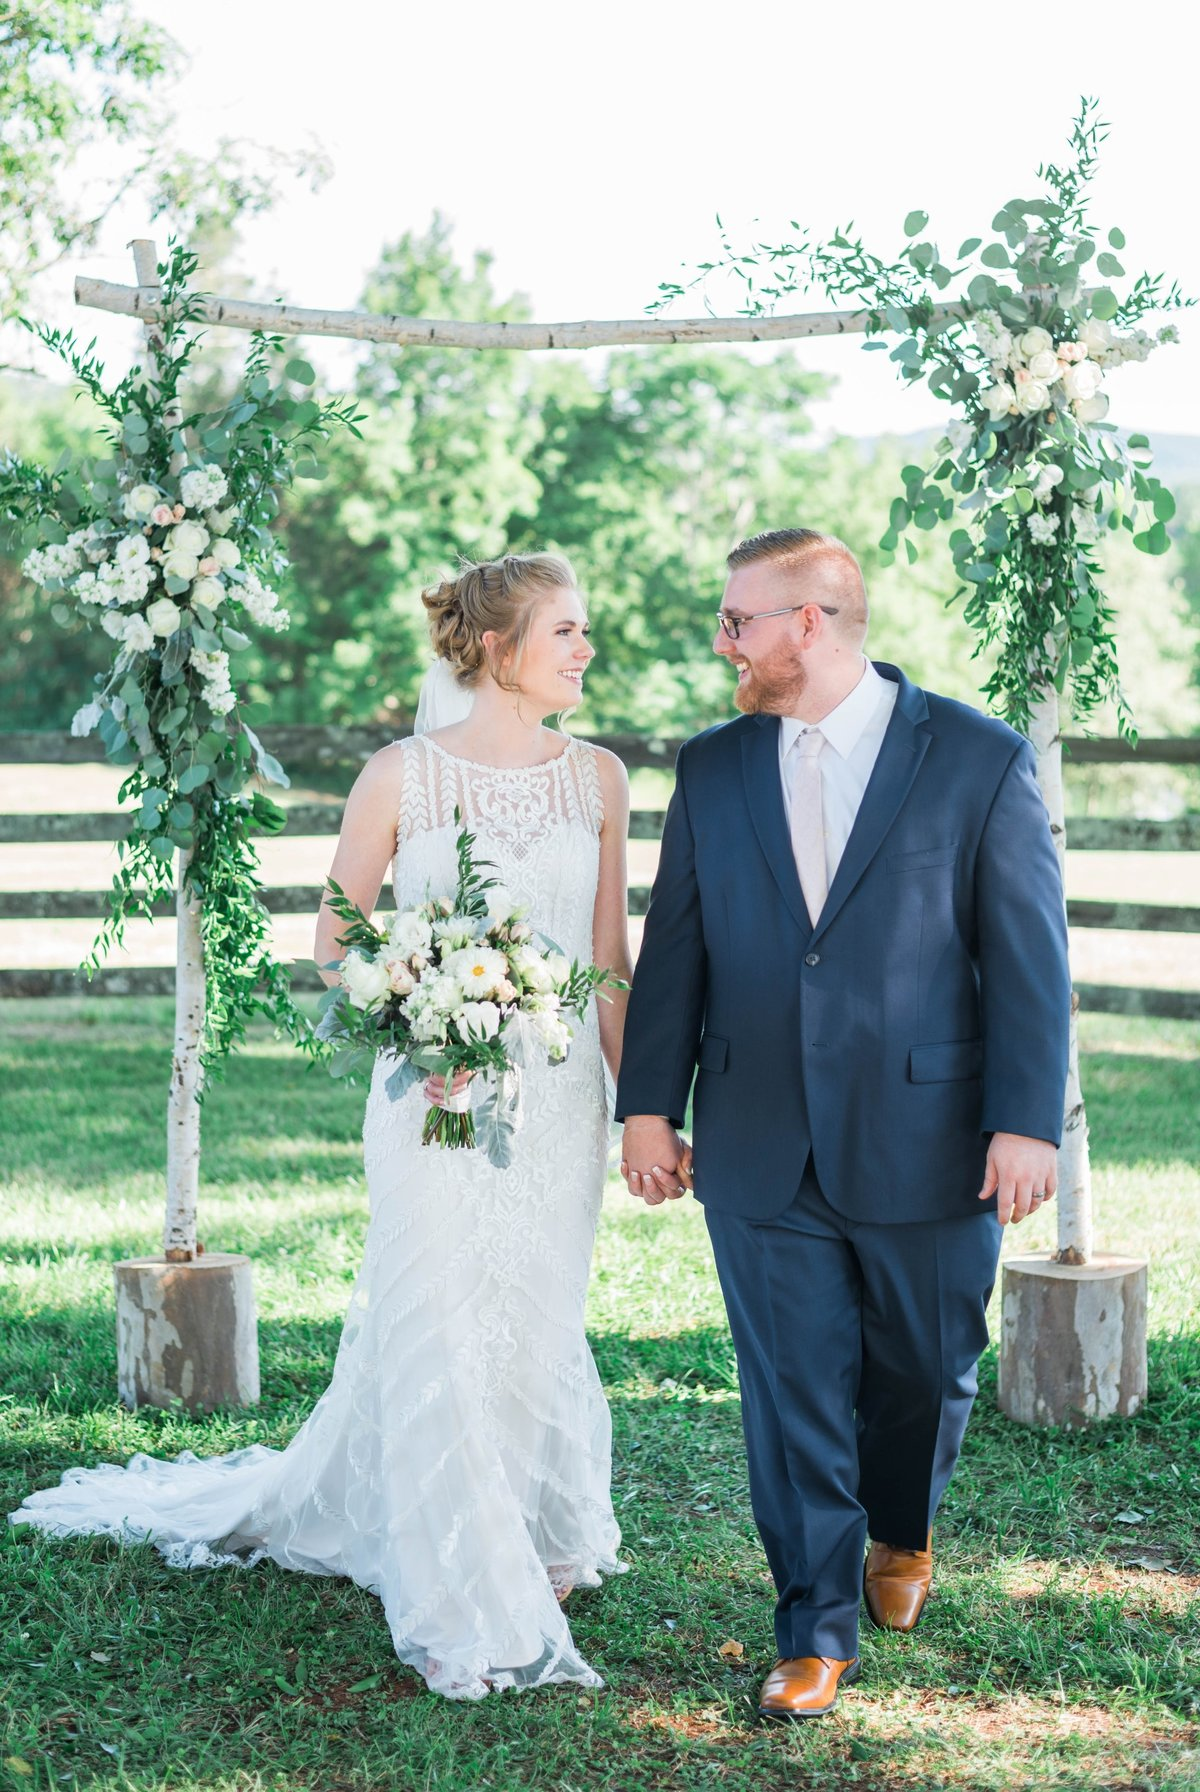 SorellaFarms_VirginiaWeddingPhotographer_BarnWedding_Lynchburgweddingphotographer_DanielleTyler+10(2)